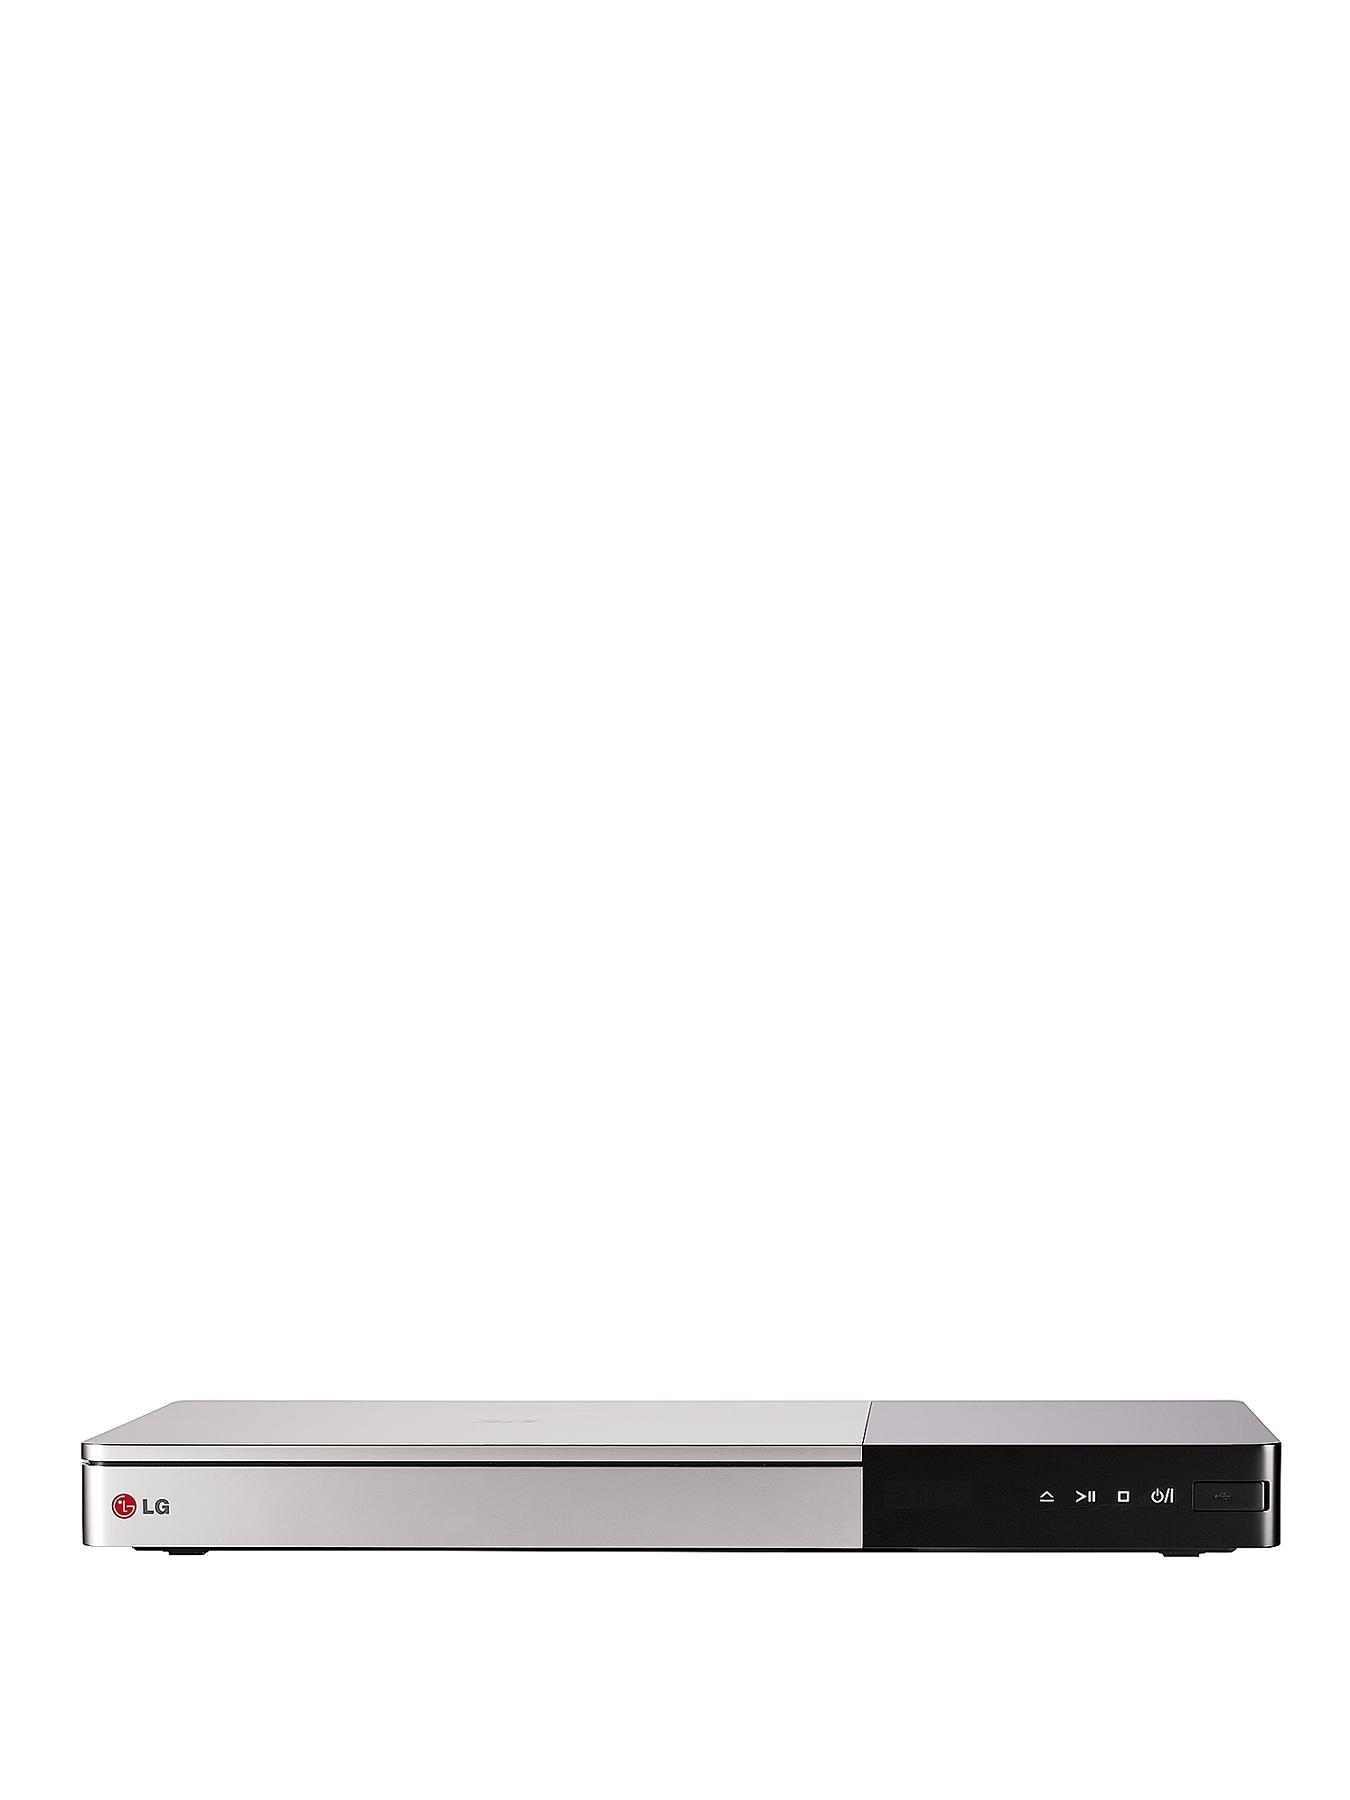 LG BP740 3D Smart Wi-Fi Blu-ray Player